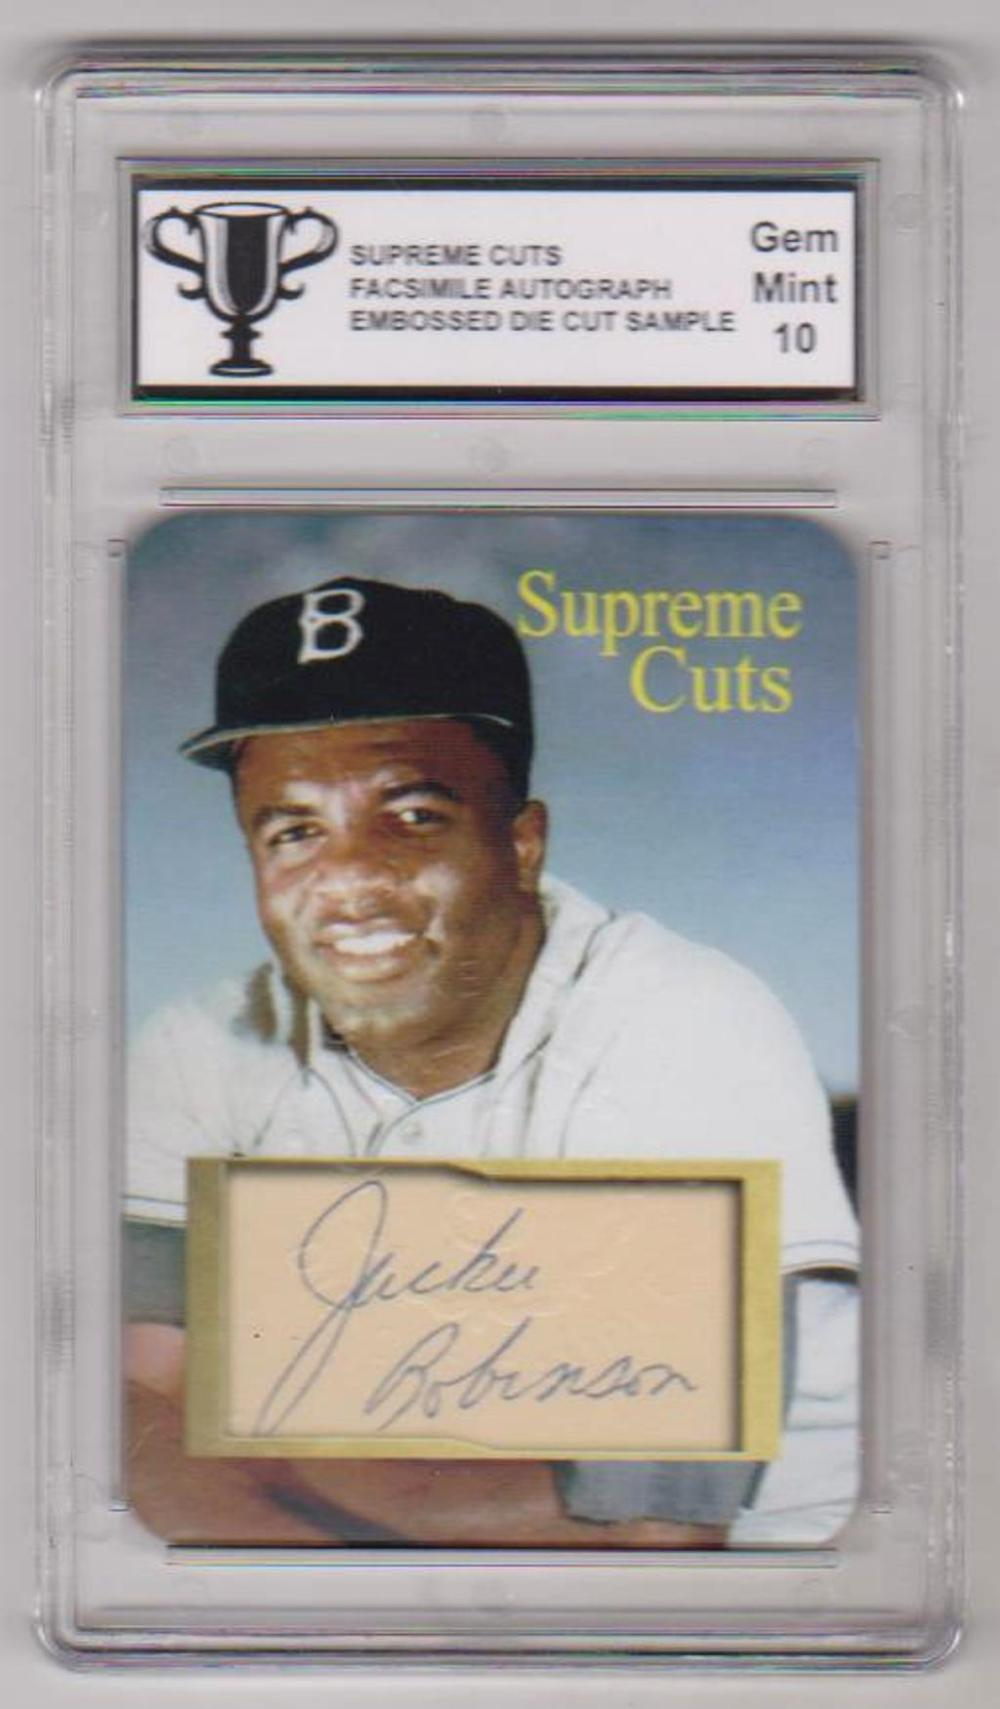 Graded Gem Mint 10 Jackie Robinson Supreme Cuts Facsimile Autograph Embossed Die Cut Sample Card